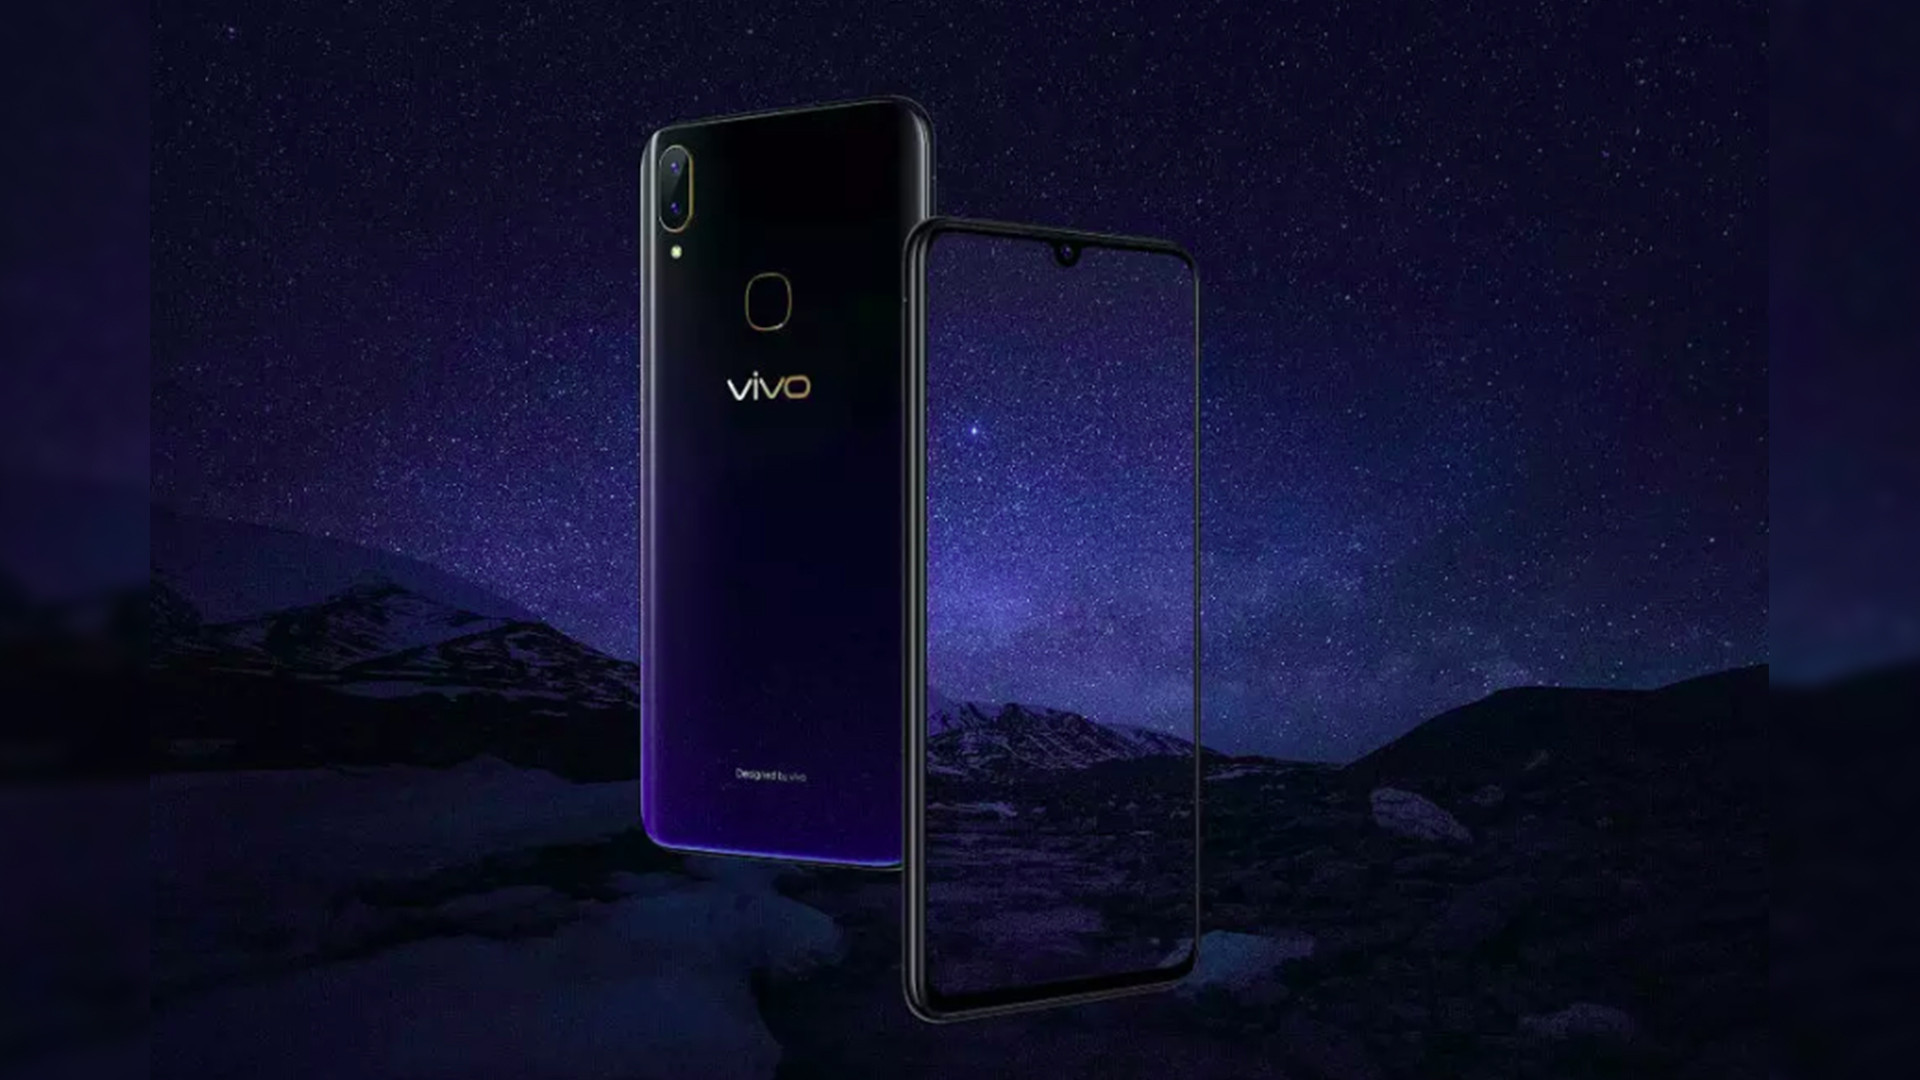 Vivo V11 Pro launched in India